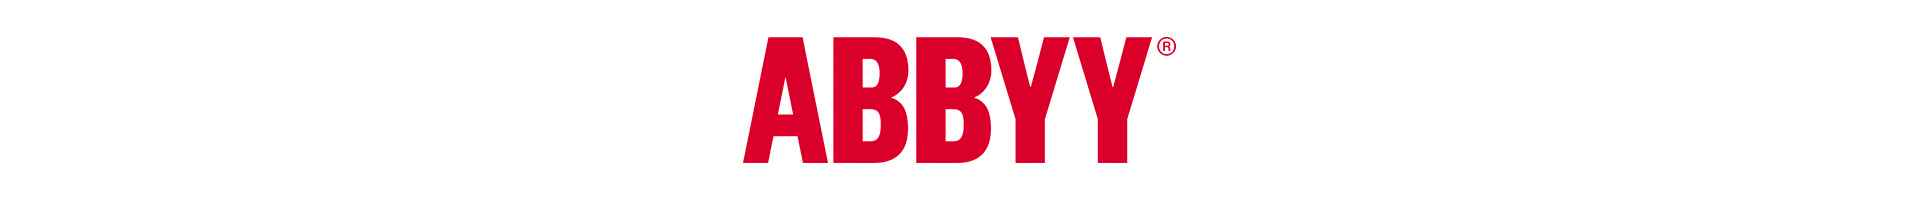 Darvideo for ABBYY